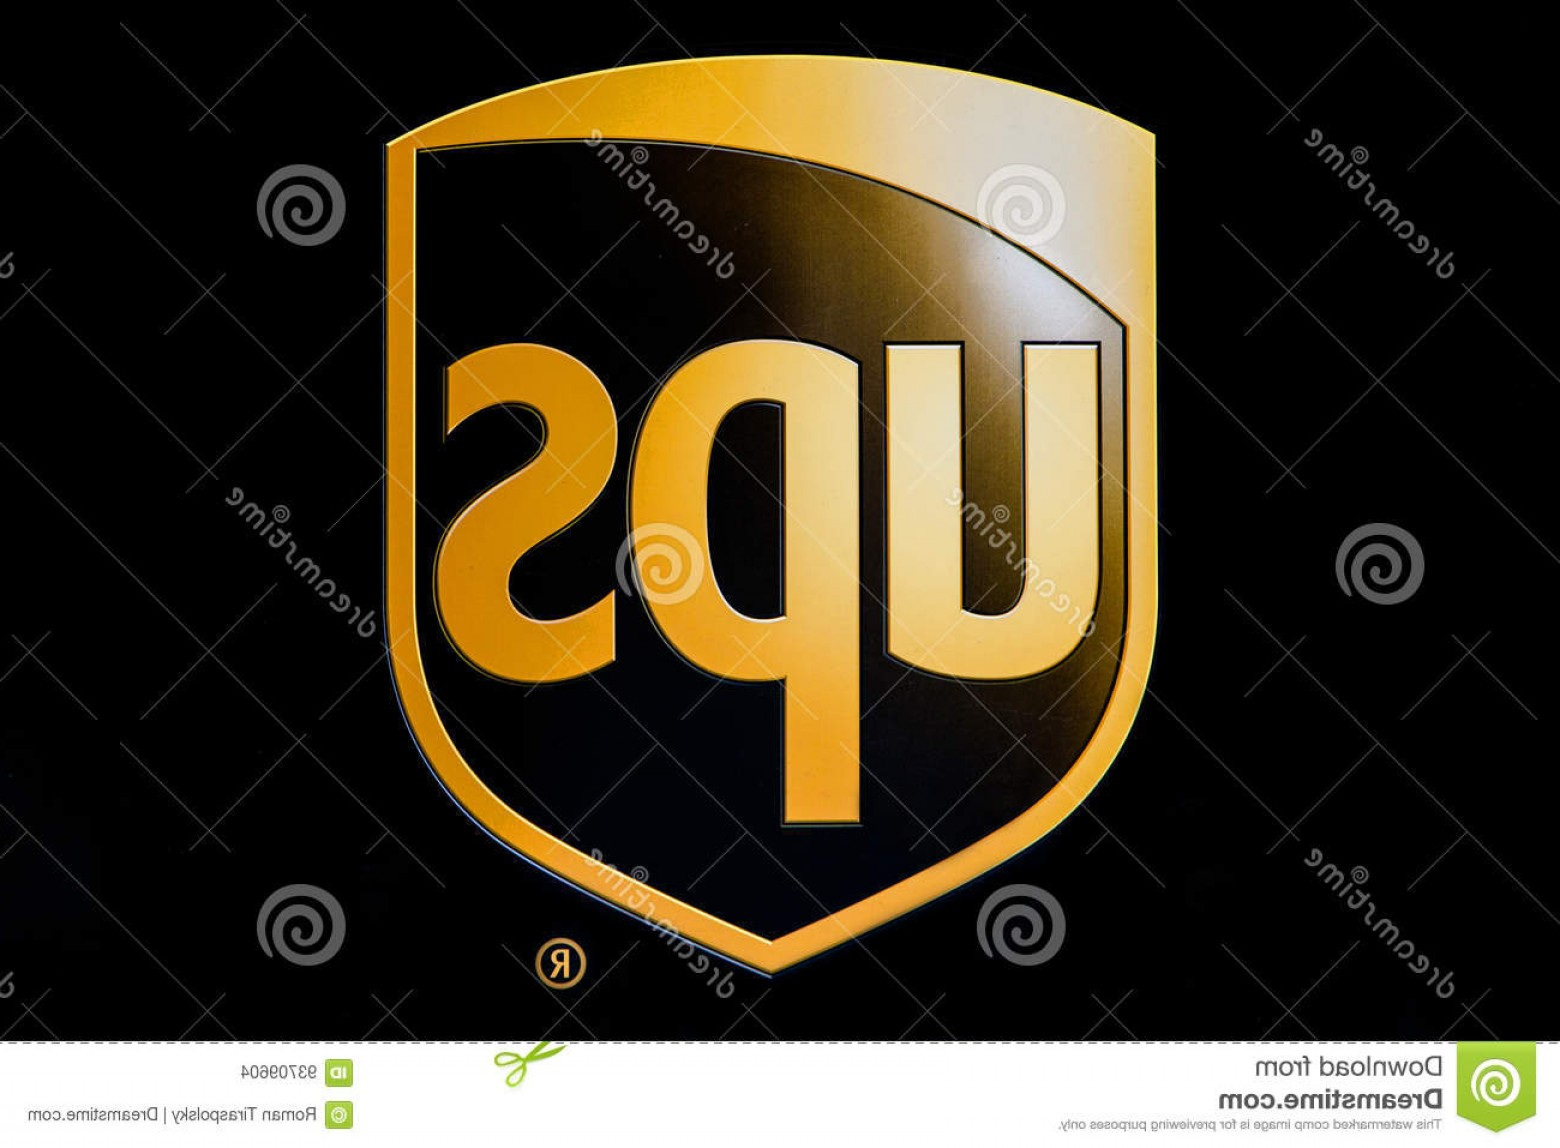 UPS Logo Vector: Editorial Stock Image Ups Logo New York April One Their Trucks Image